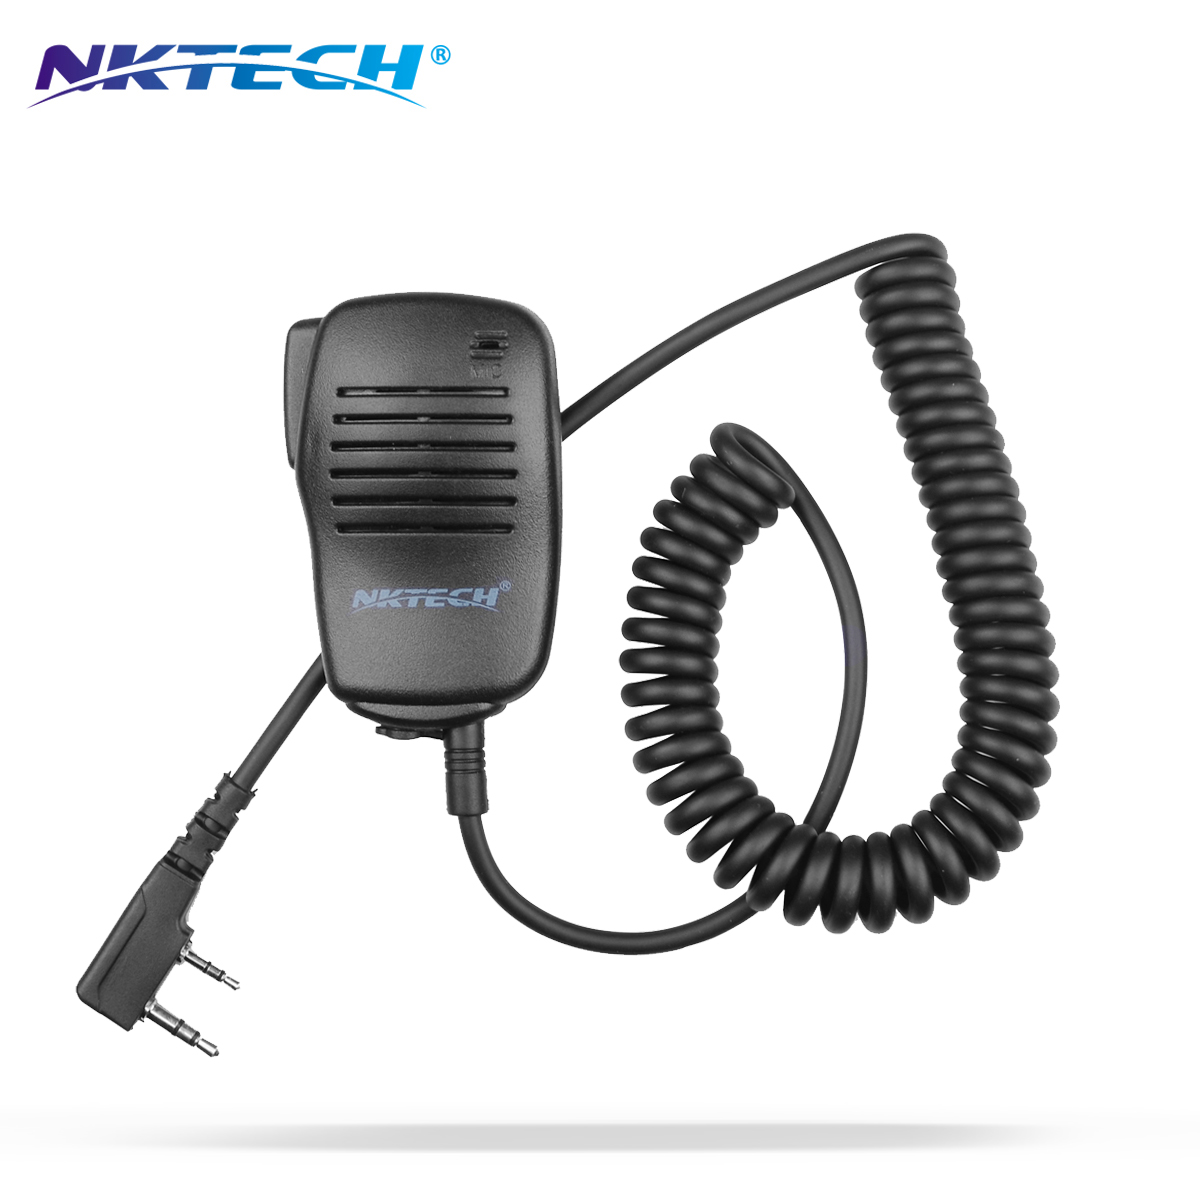 Nktech Nk H5 Earpiece Headset For Puxing Wouxun Tyt Kenwood Baofeng Microphone Wiring Diagram Speaker Mic S113 Px 777 888